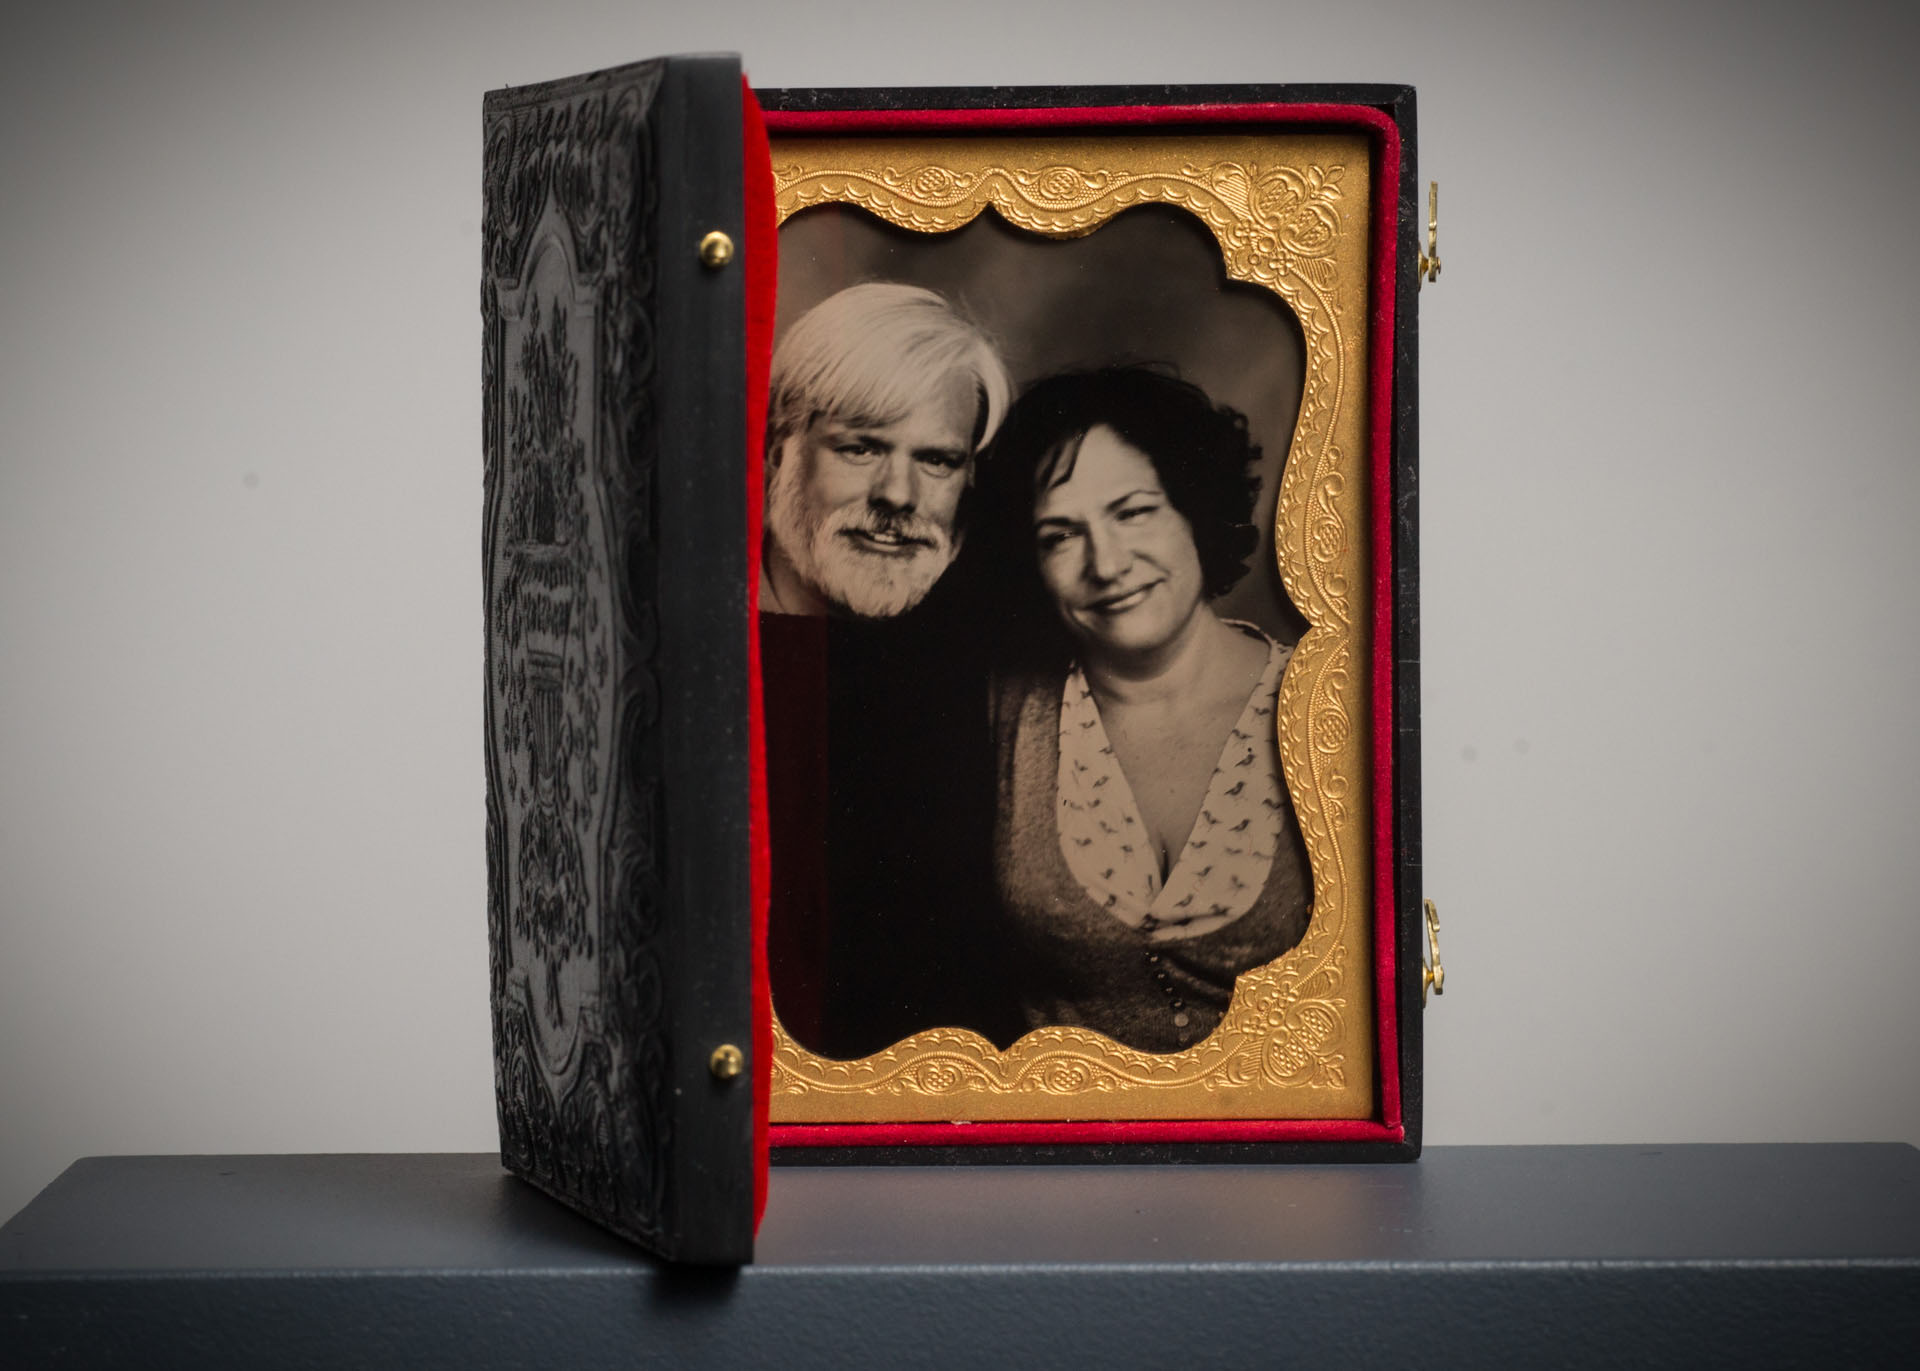 Glens Falls Art®. A Mobile Tintype Studio located between Lake George and Saratoga, NY. Creating wet plate collodion images in Glens Falls, NY and the Adirondacks.